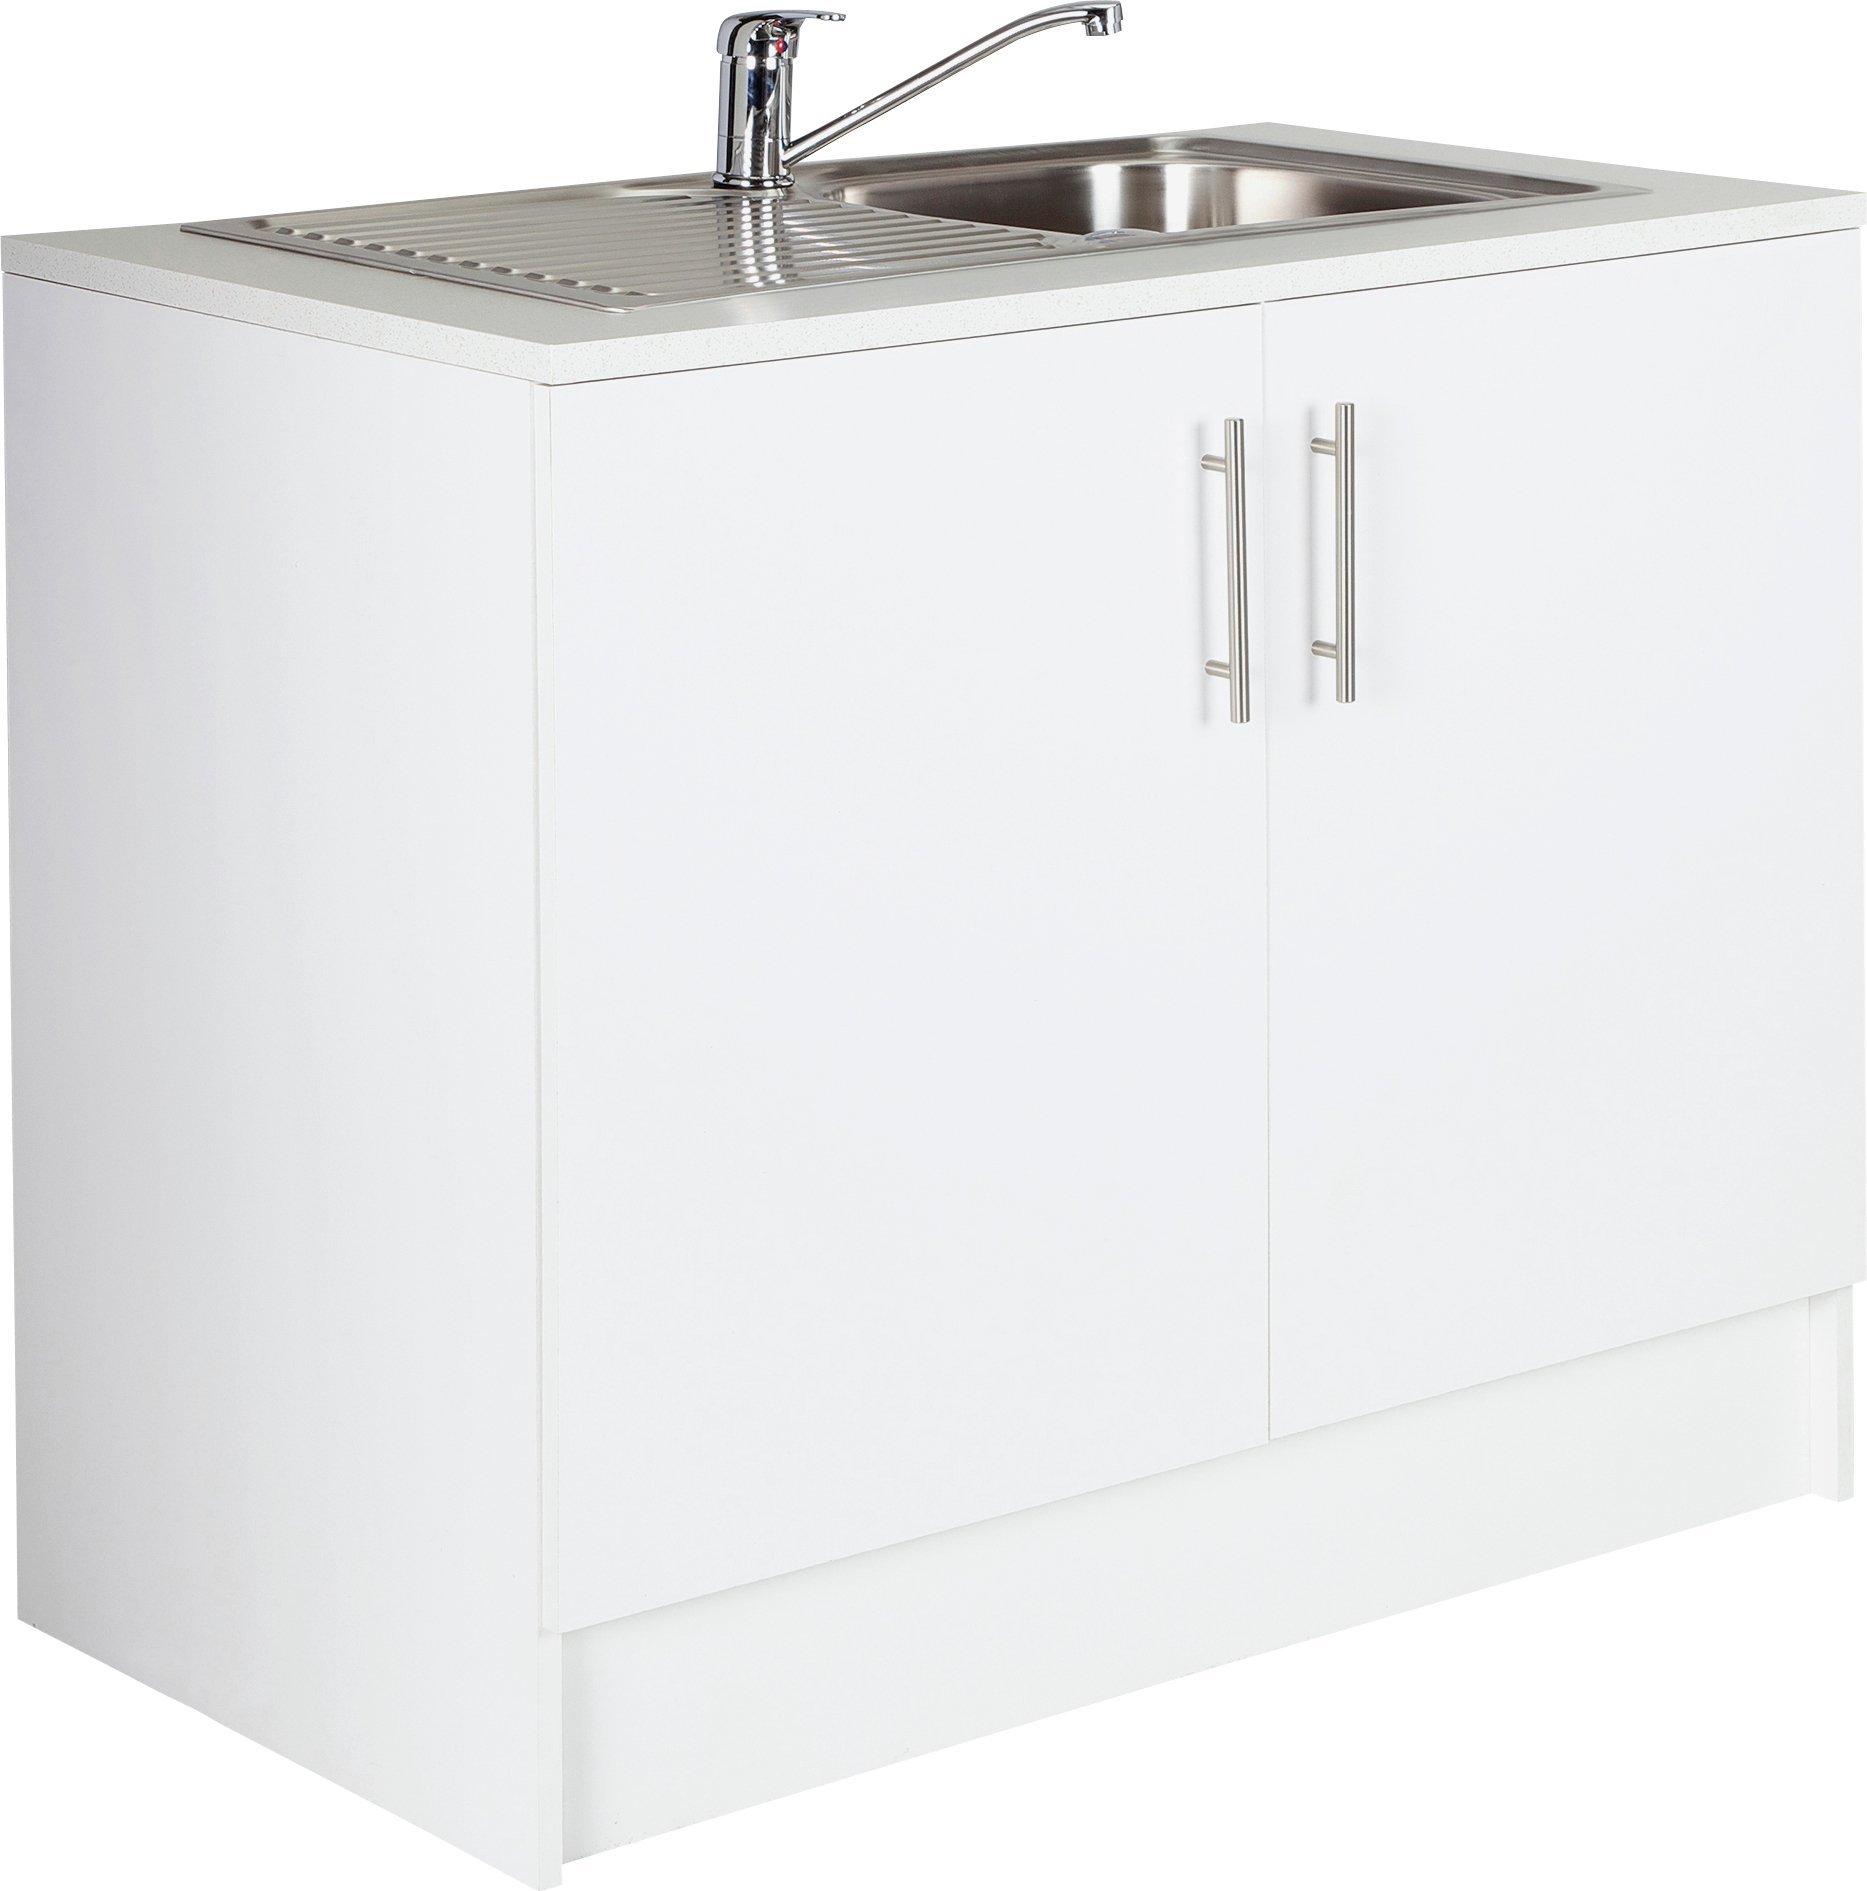 stainless steel kitchen sink reviews wood mode kitchens athina 1000mm unit review